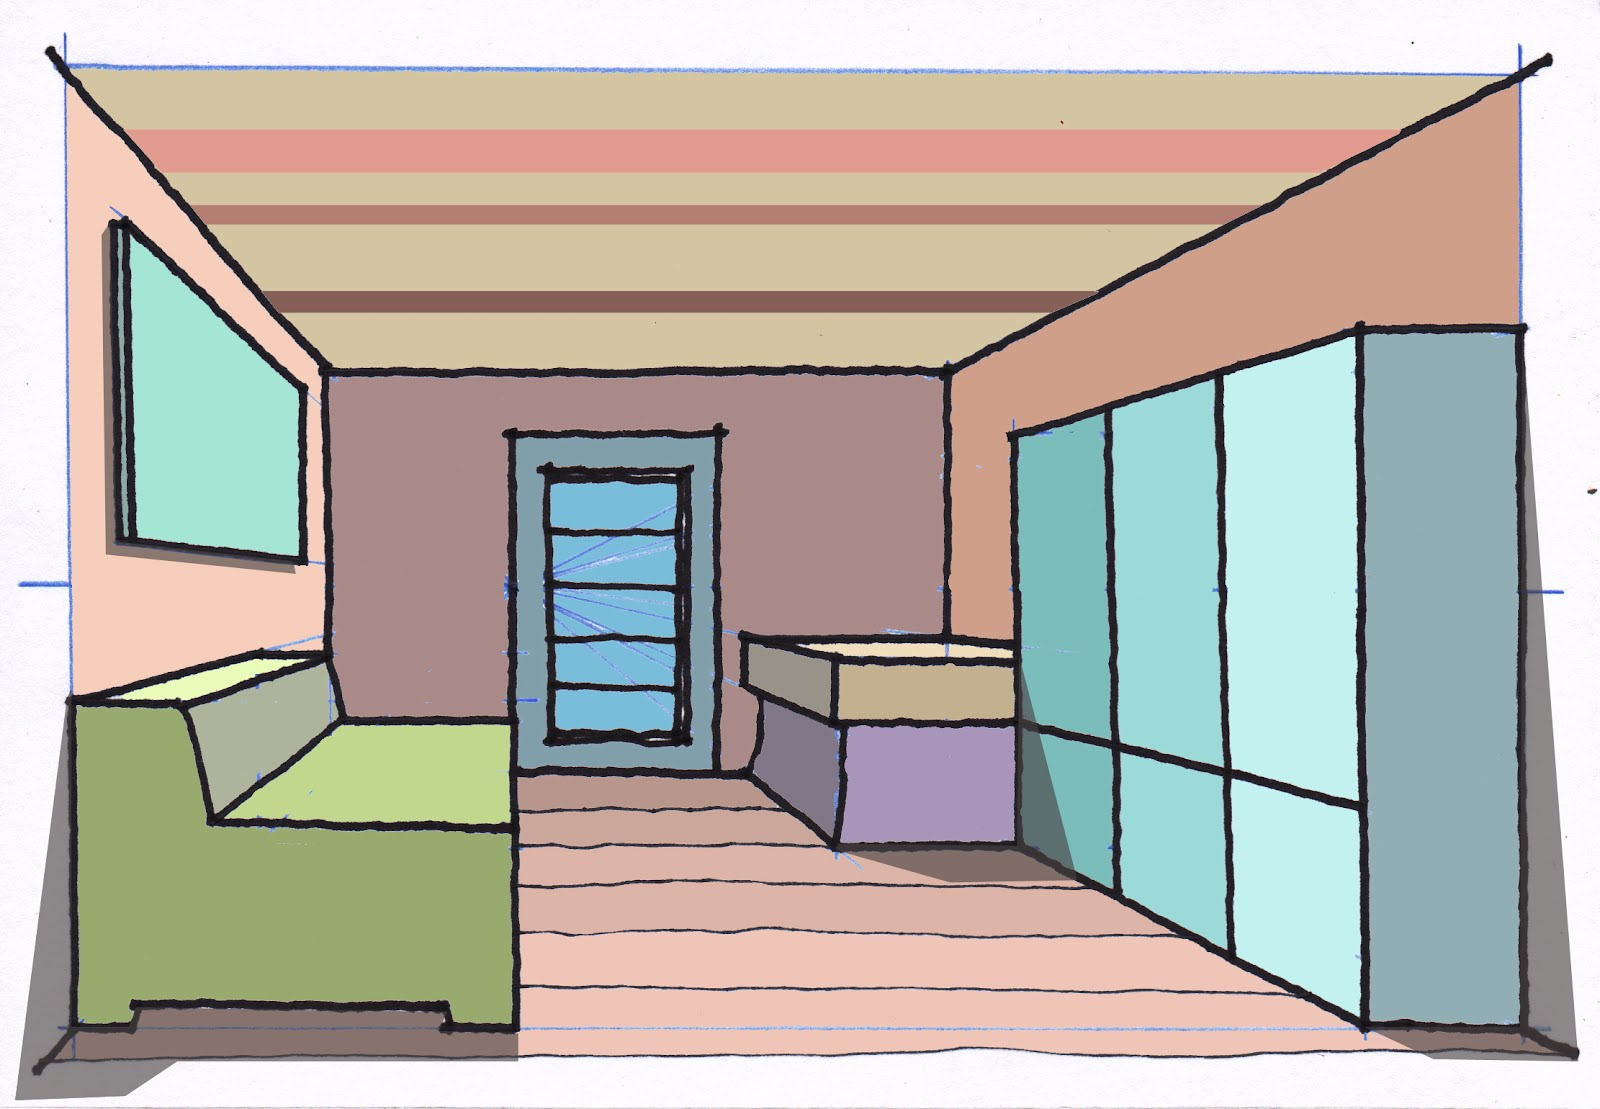 Sketch Amp Draw A Room One Point Perspective